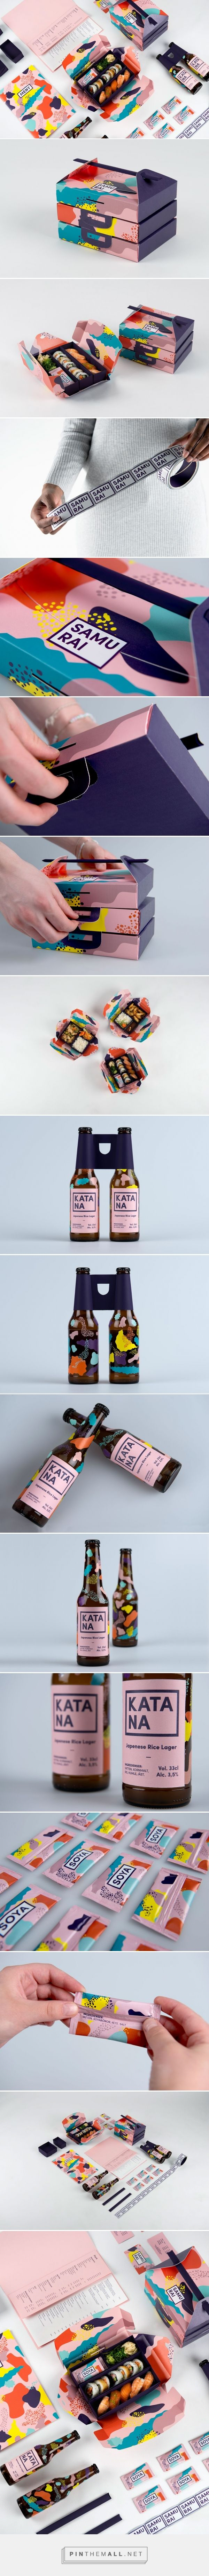 "www.lescomptoirsdorta.com _ Designers: Oliver Sjöqvist, Nanna Basekay, Fanny Löfvall _ ""created a new beer to the brand and also developed a new take away concept. Inspiration are taken from the colorful Japanese culture and handwork"""